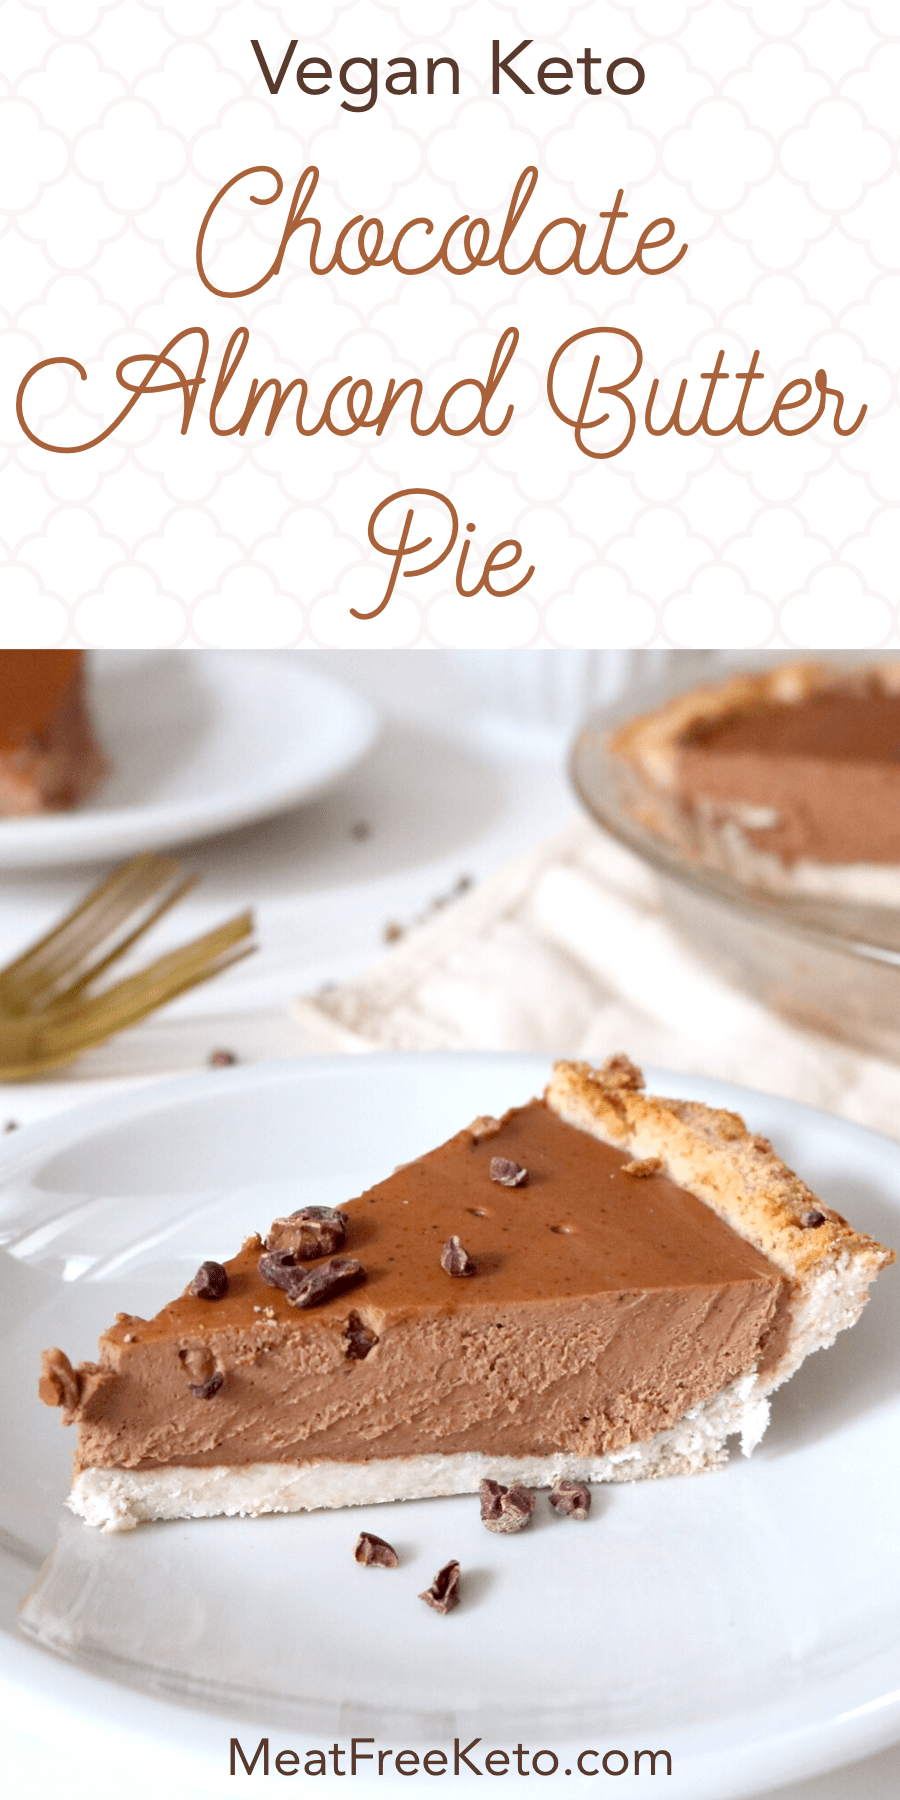 Vegan Keto Chocolate Almond Butter Pie   Meat Free Keto - this rich and decadent dessert is low carb, sugar-free, dairy-free, soy-free and gluten-free.